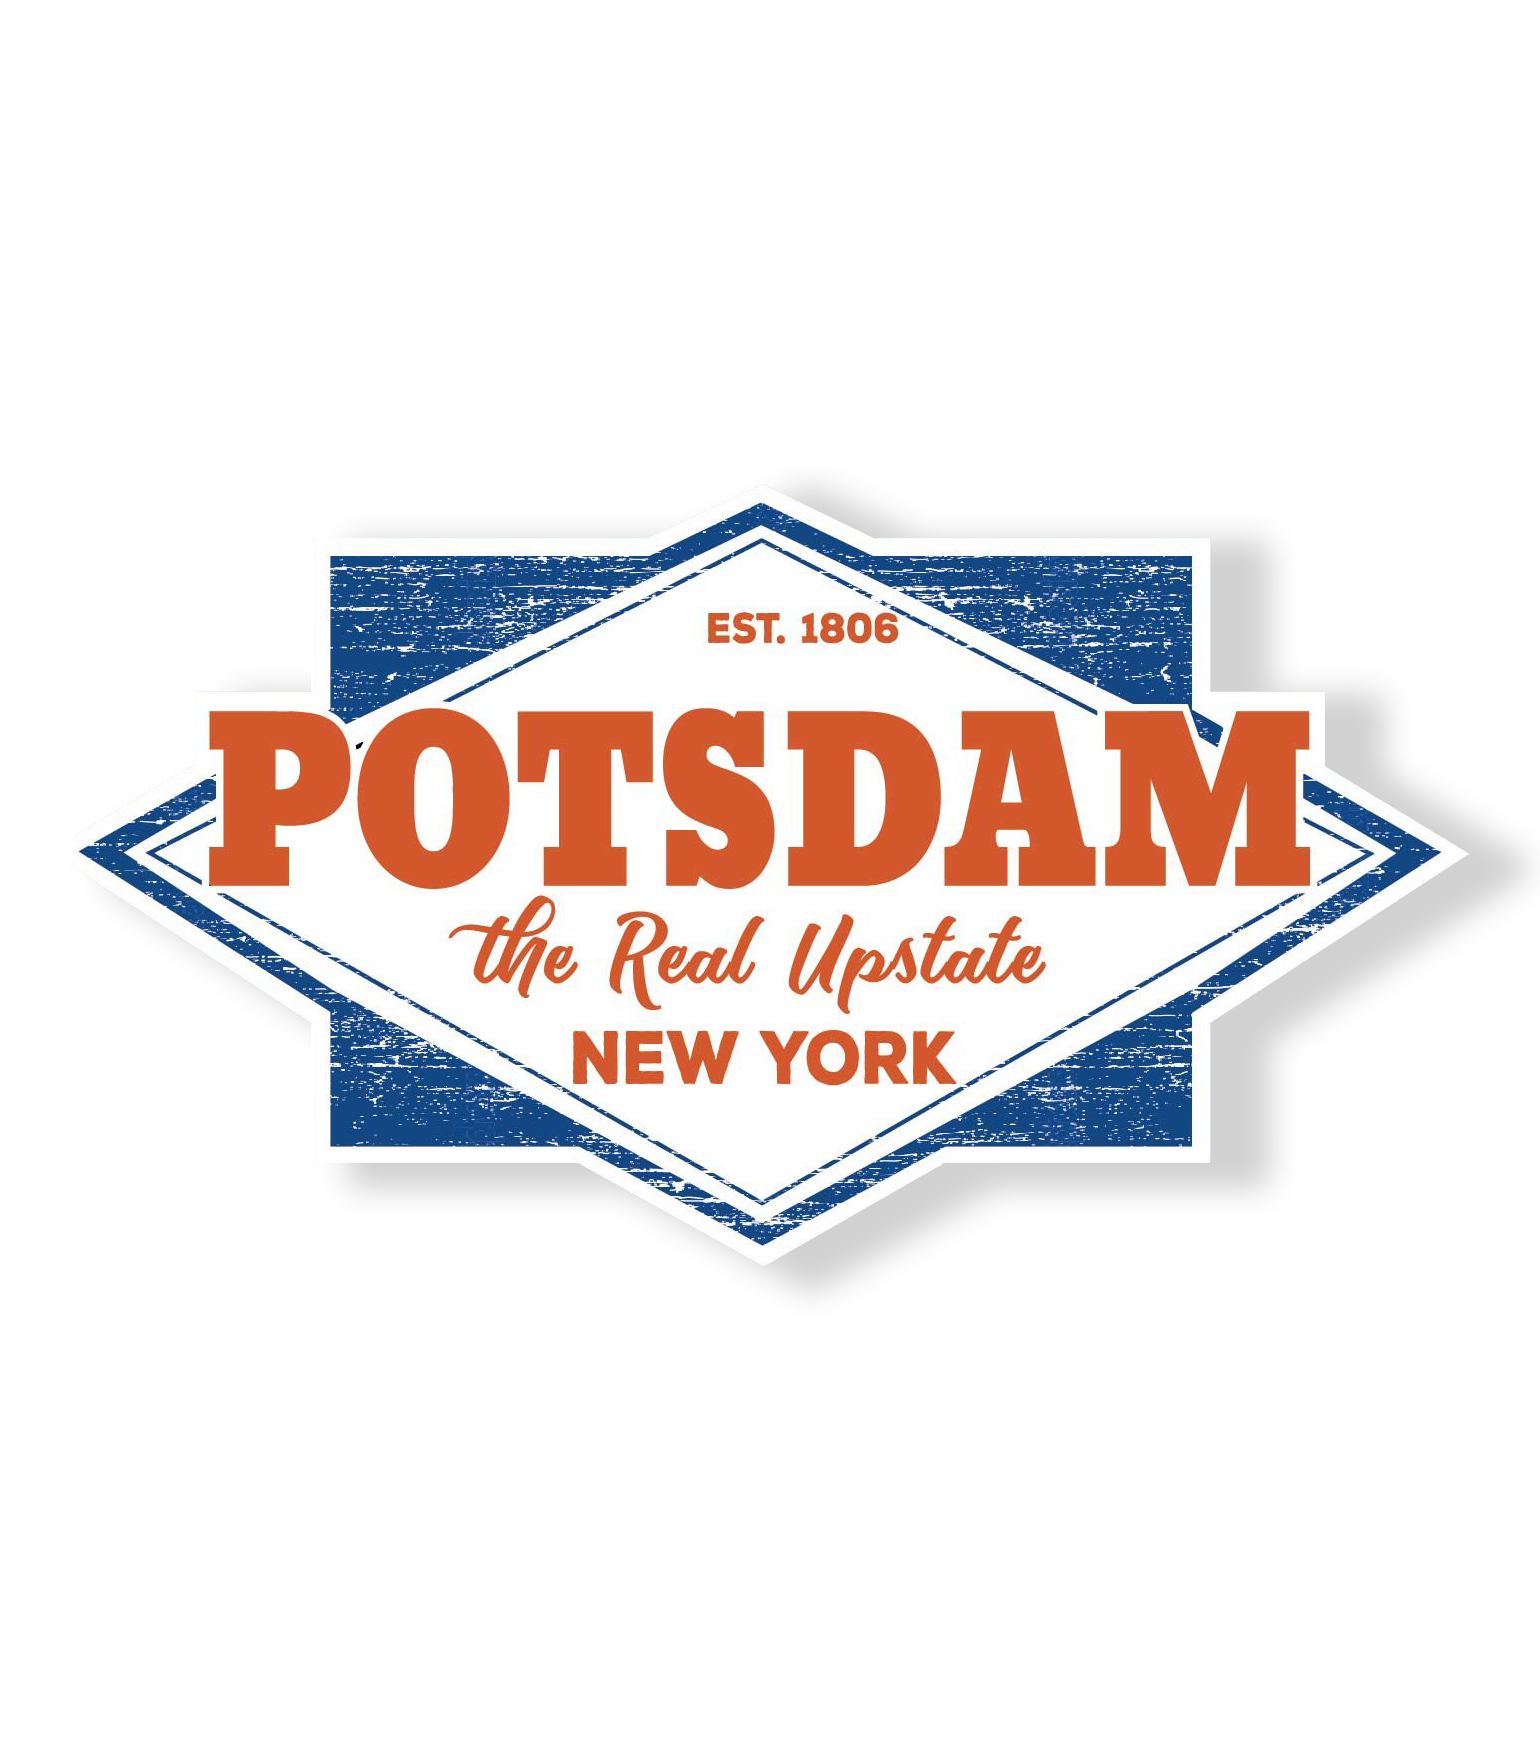 Potsdam Vinyl Decal